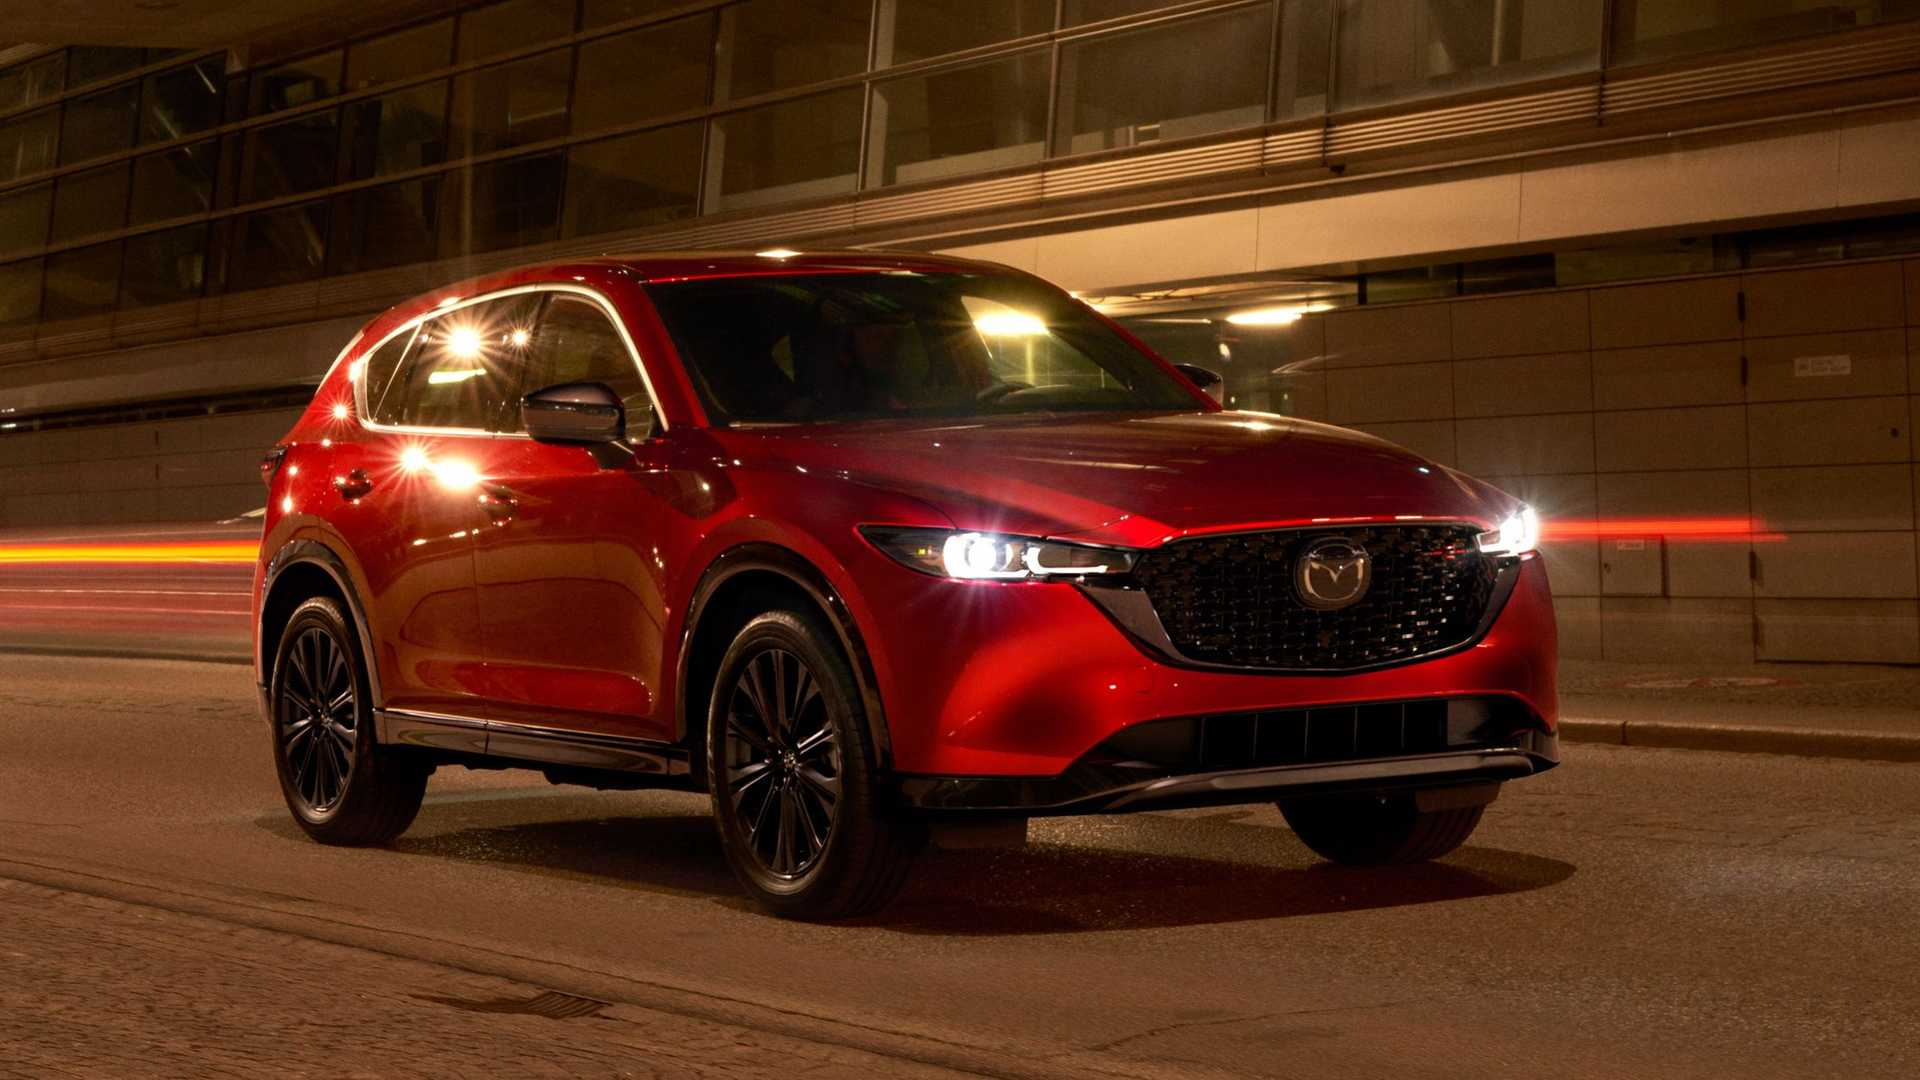 Leveled Up: Mazda Has Revamped Its Crossover Line And The Newness Includes RWD And A Turbocharged Inline Six